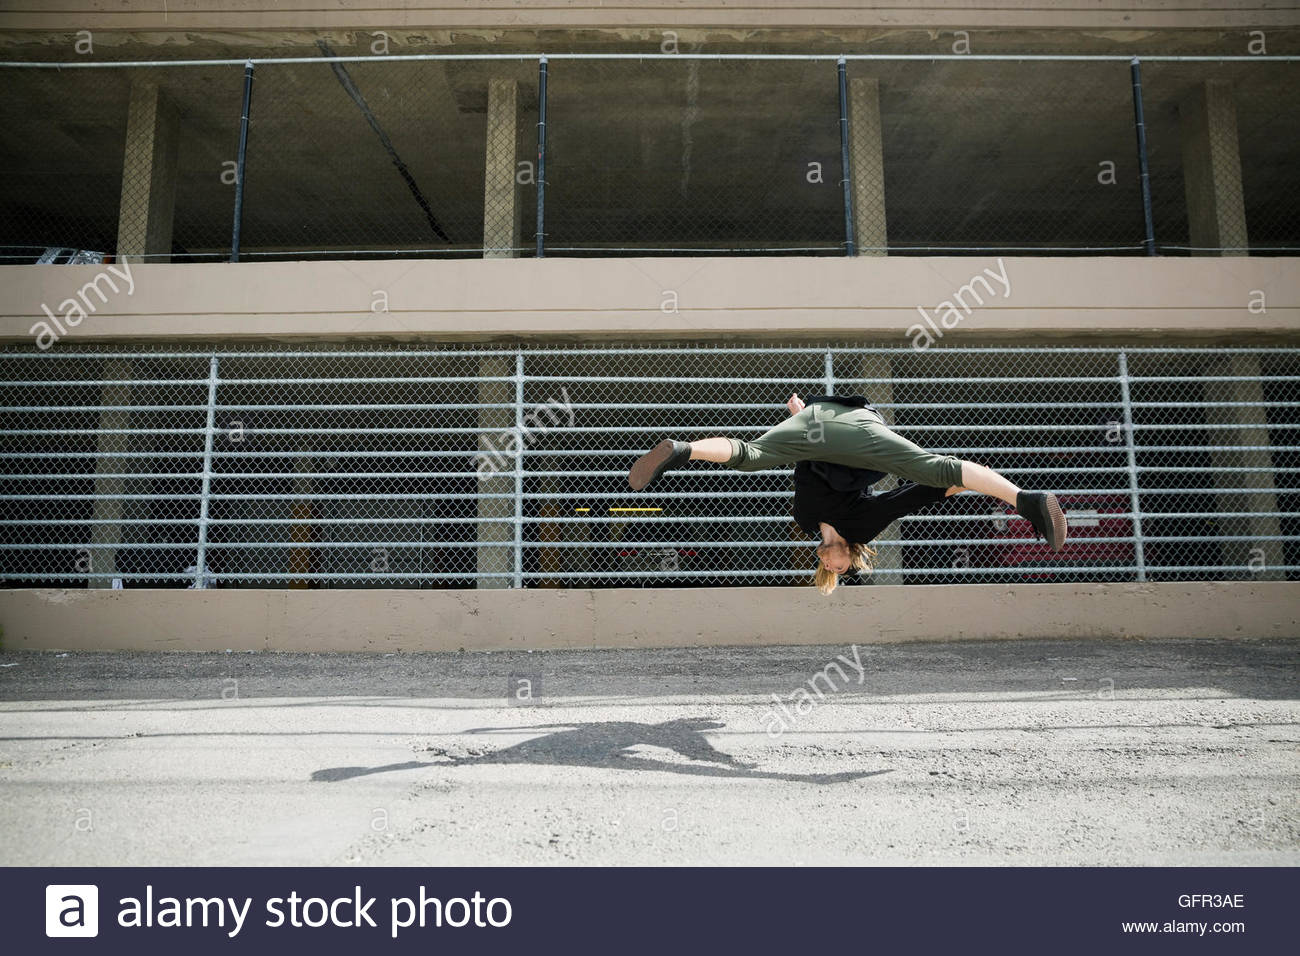 Young man doing parkour against fence in urban alley - Stock Image